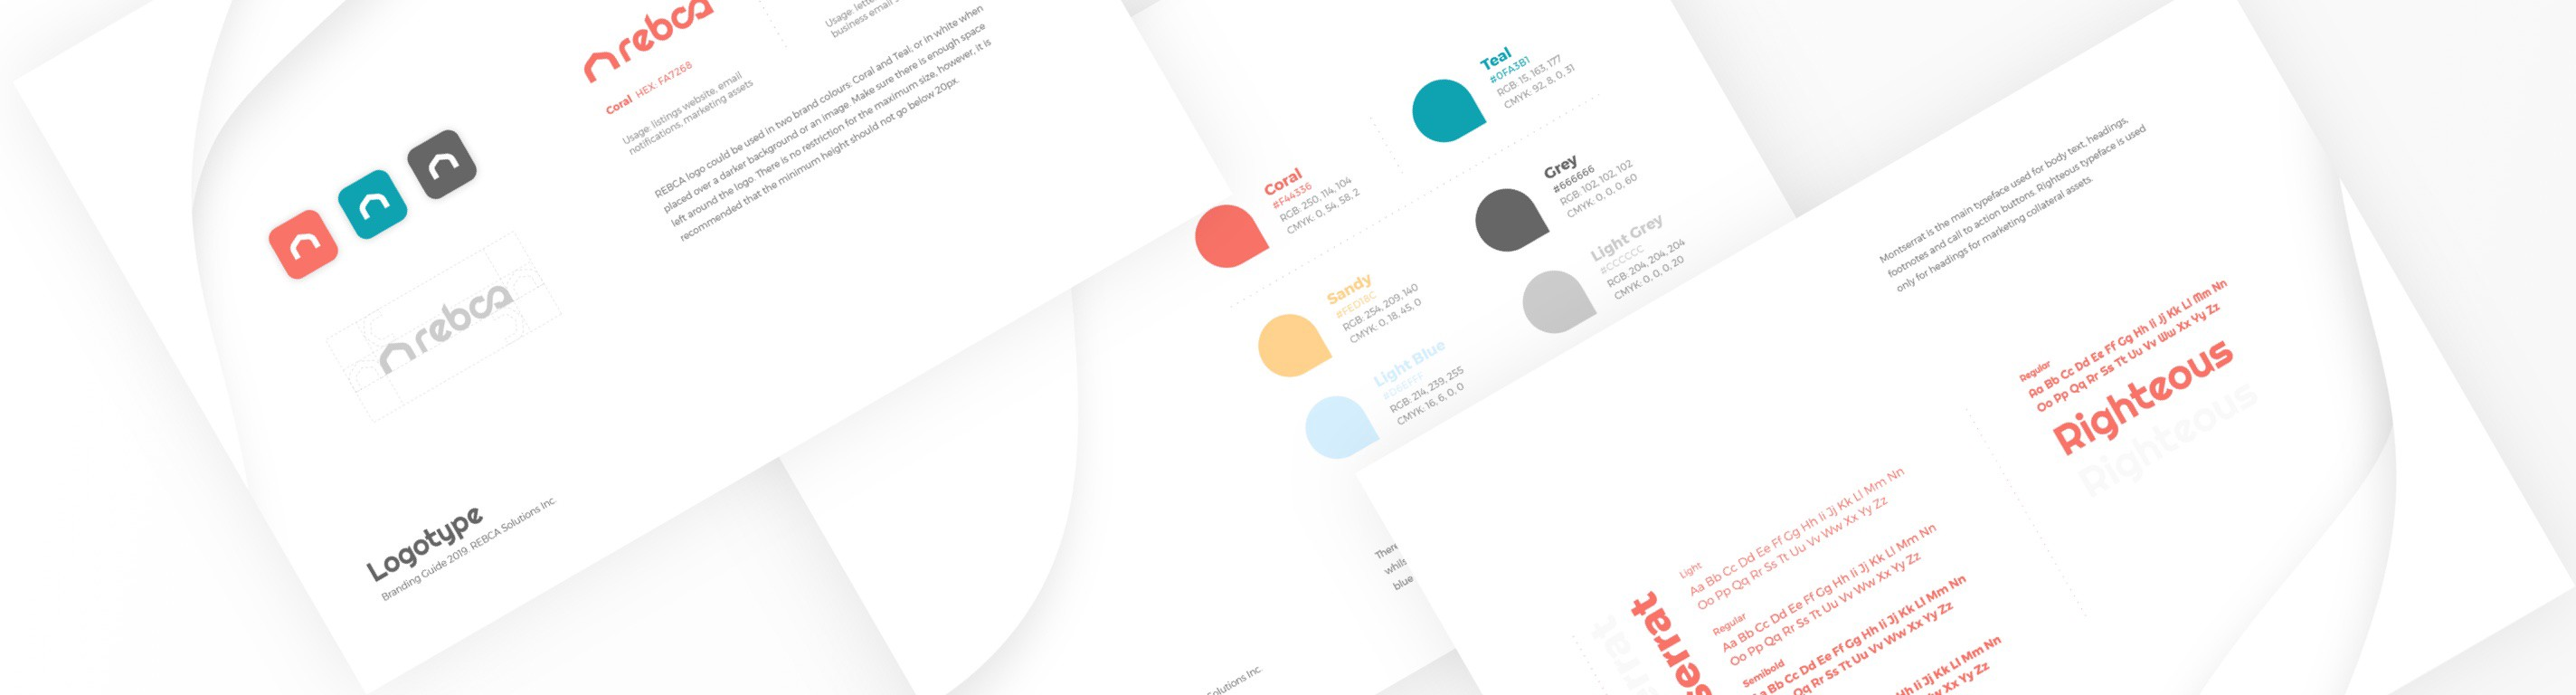 Header image with snippets from the branding guide